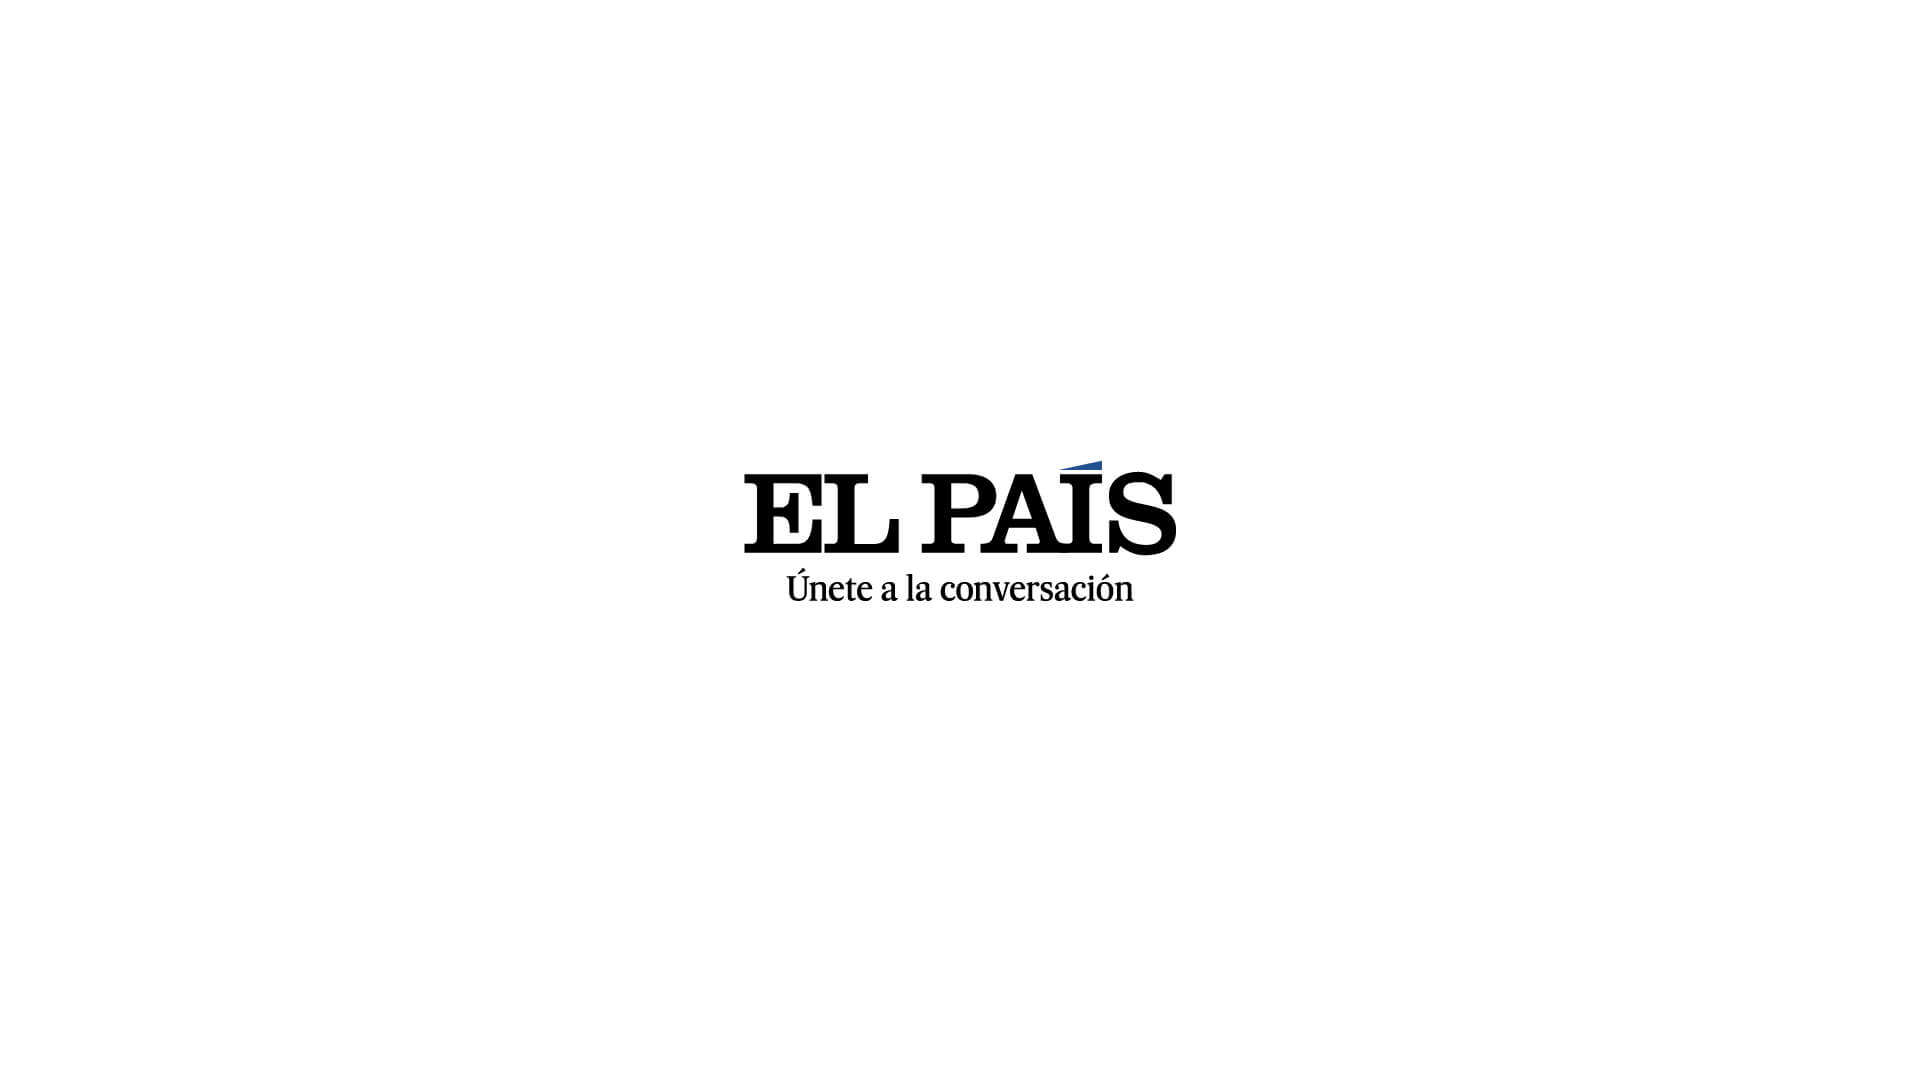 El_Pais-Join_The_Conversation-still_08